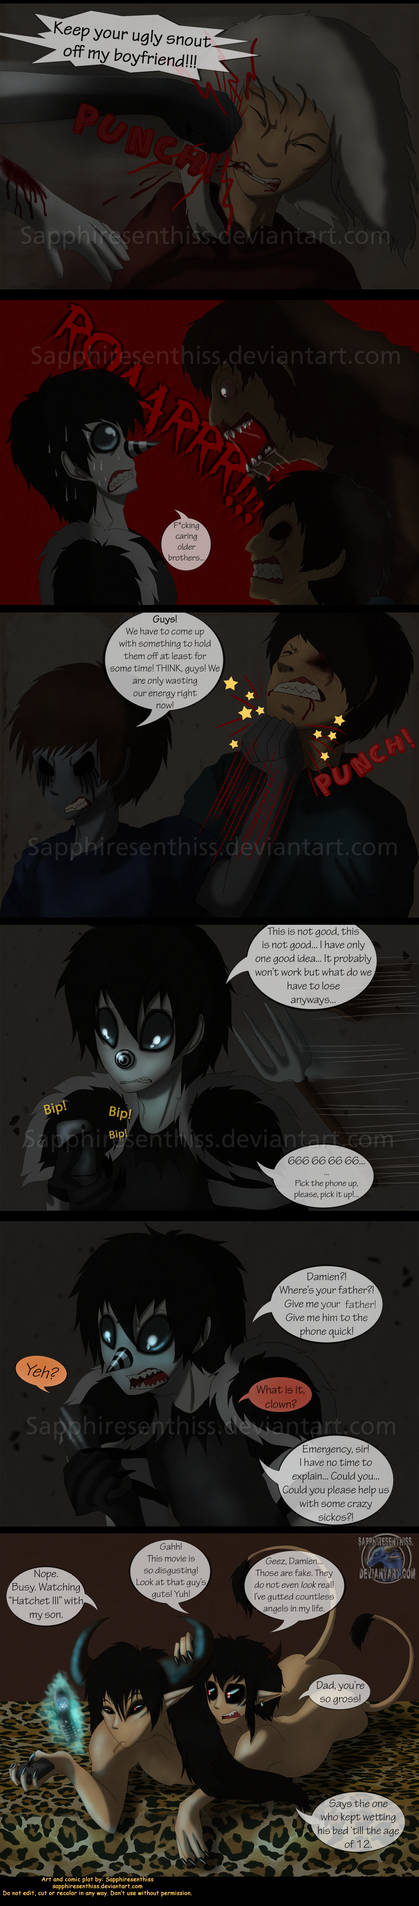 Adventures With Jeff The Killer - PAGE 150 by ...